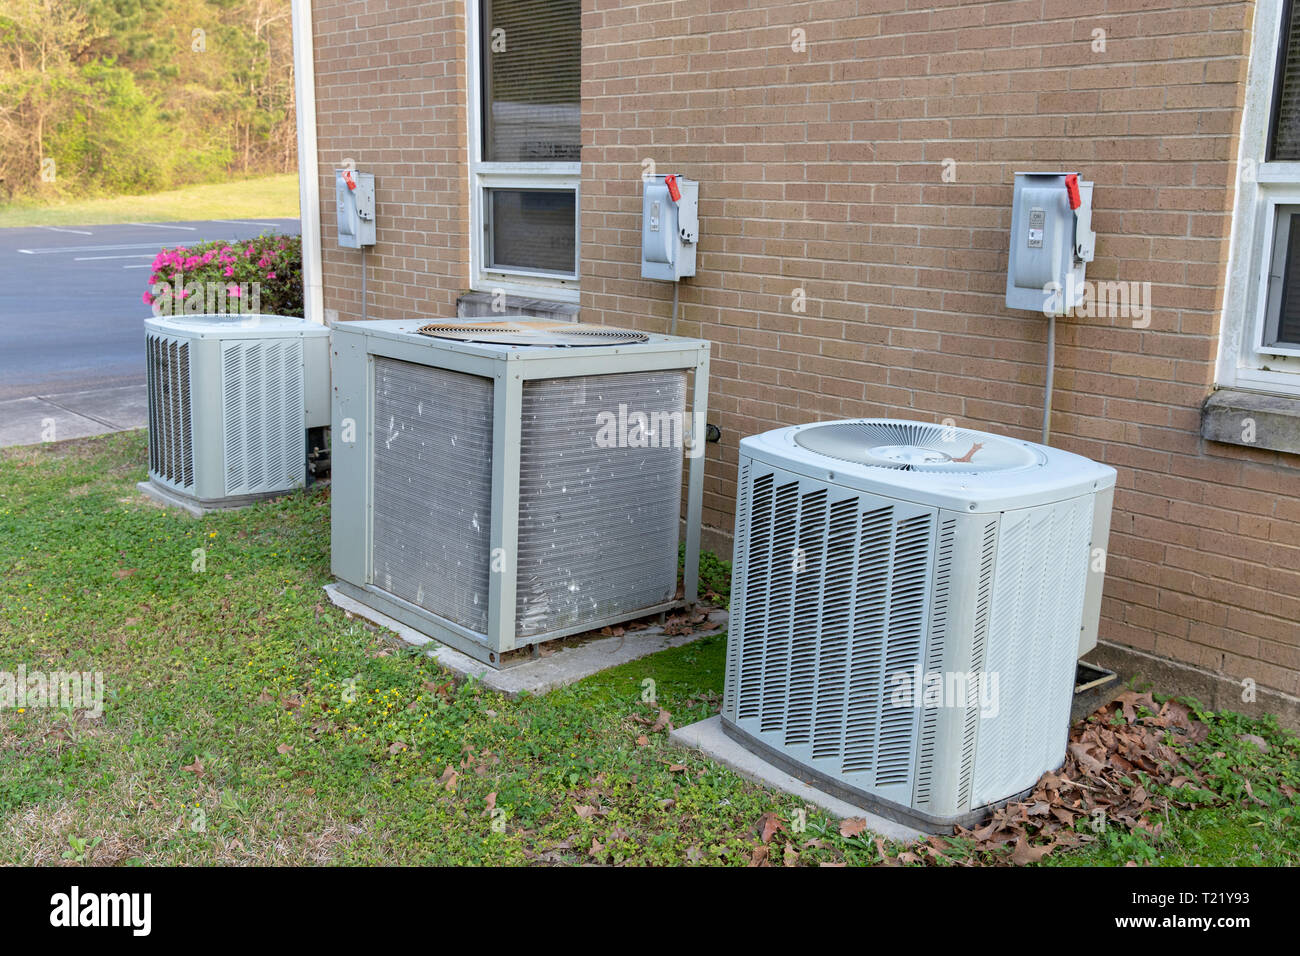 3 Air Conditioner Compressors outside commercial building with cutoff switches. Stock Photo